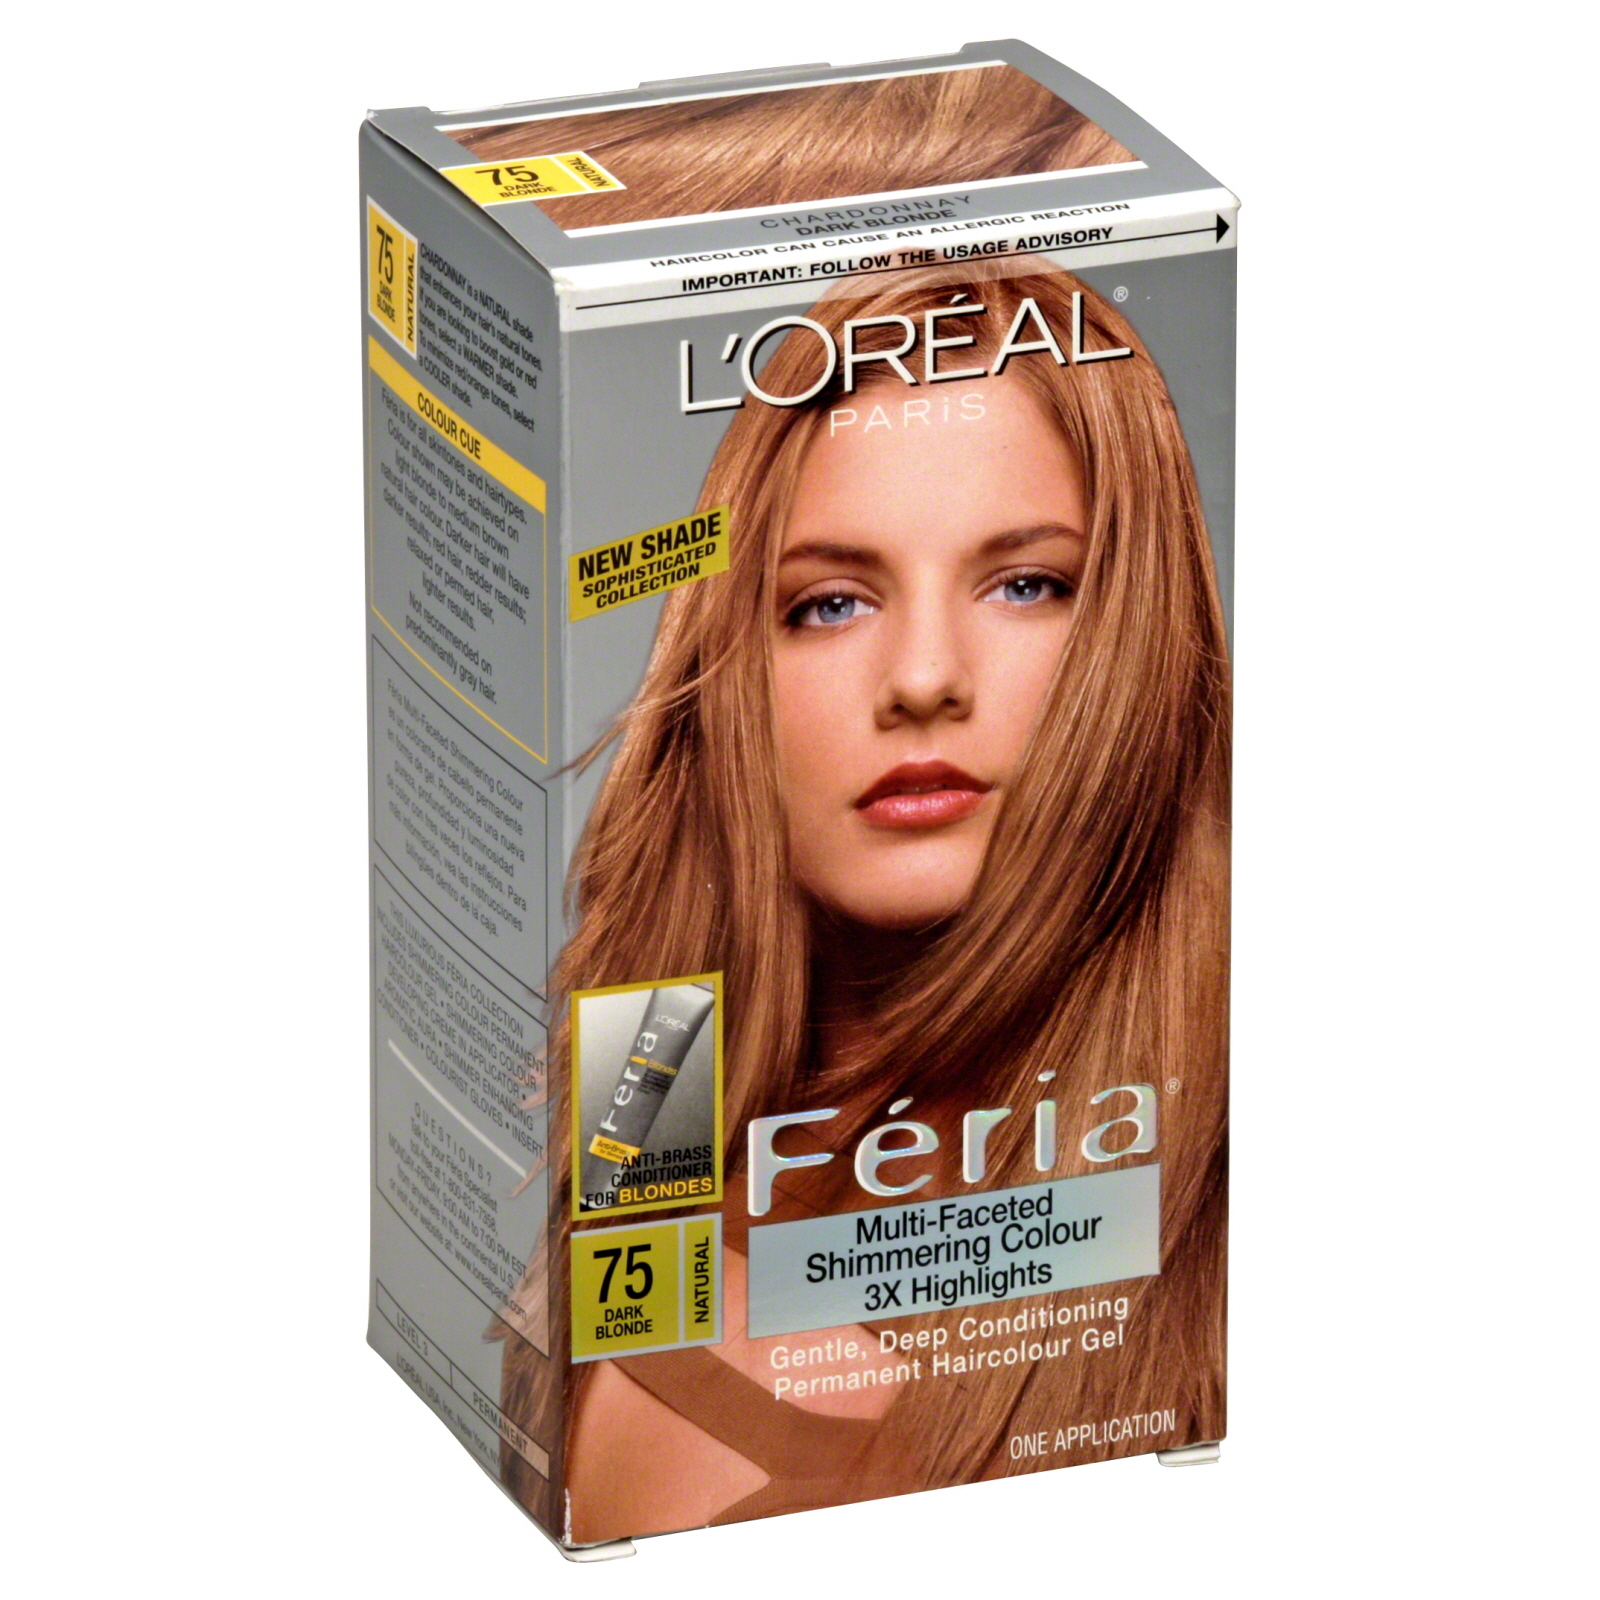 Hair Care (93) at mygofer.com